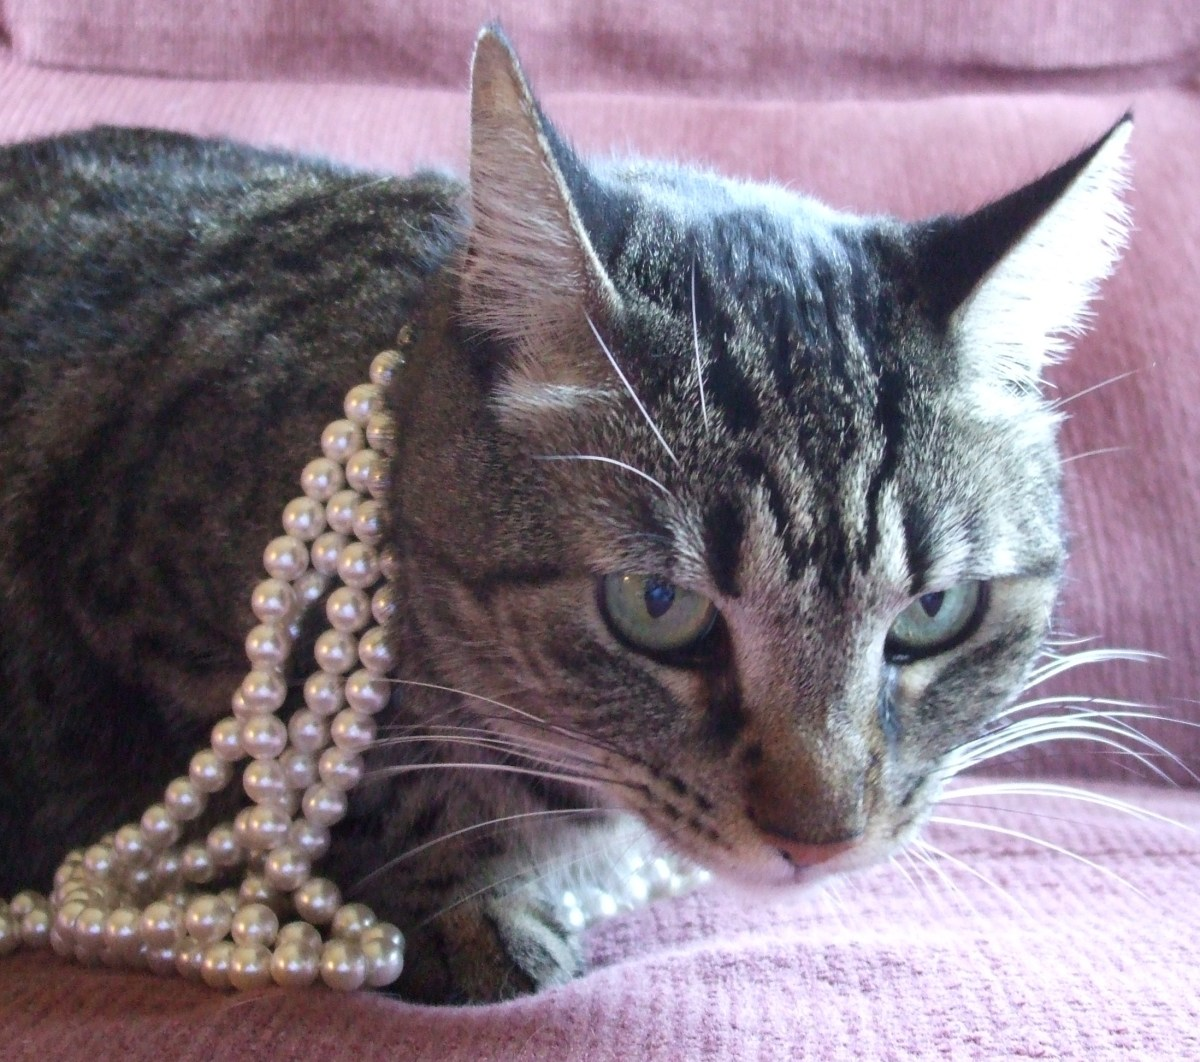 The Goddess is not pleased with a simple strand of pearls for her Glam Witch look.